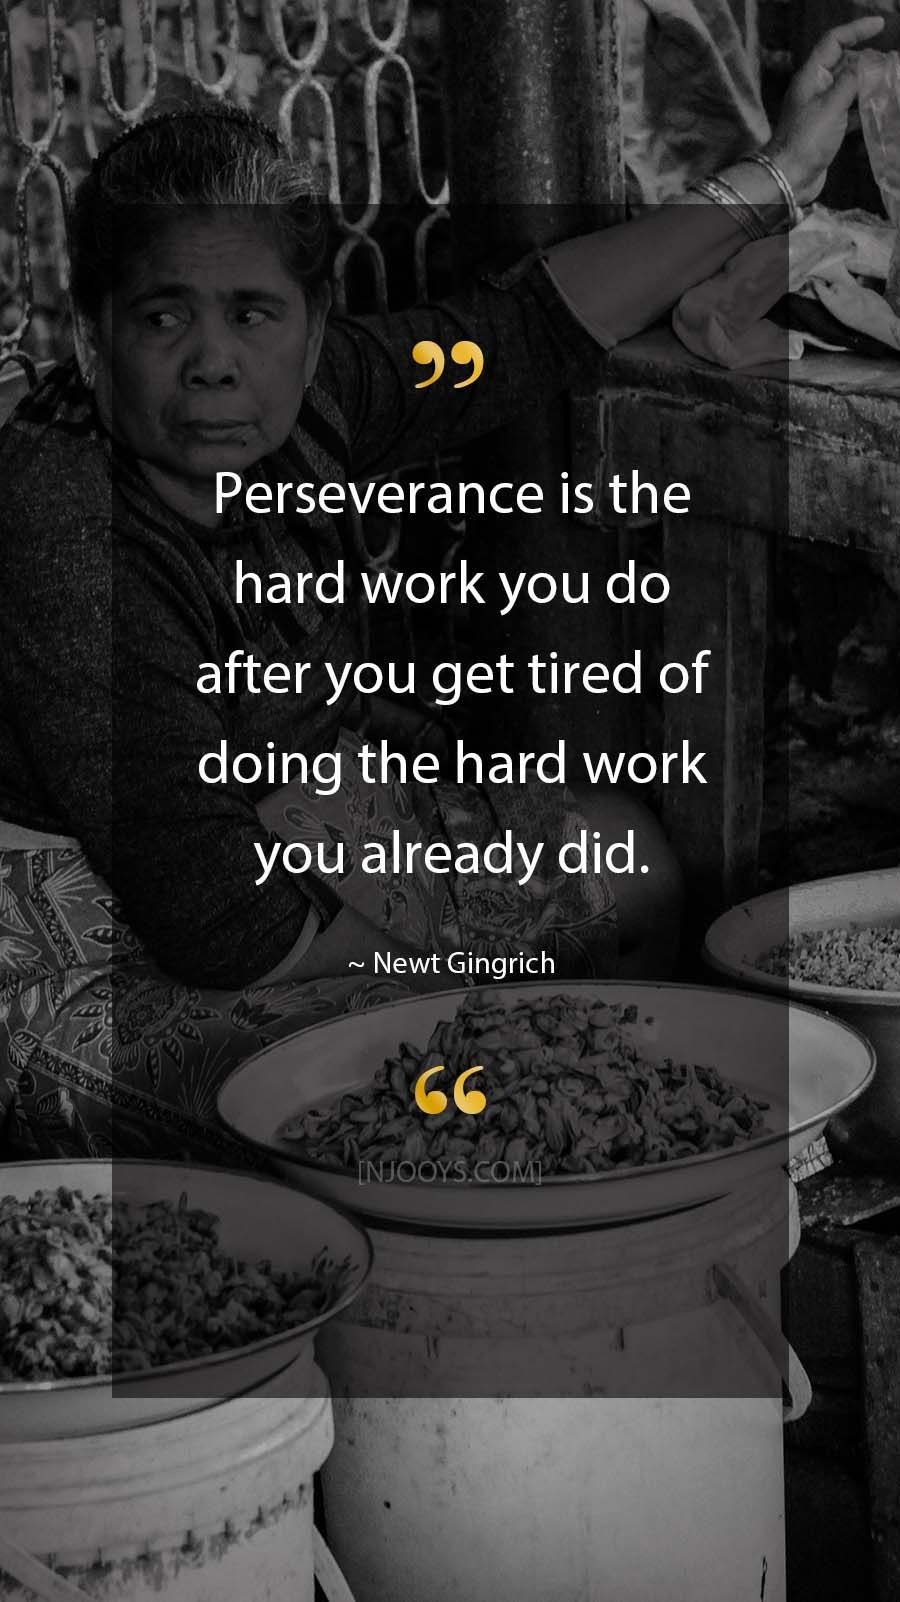 Newt Gingrich Quotes. Perseverance is the hard work you do